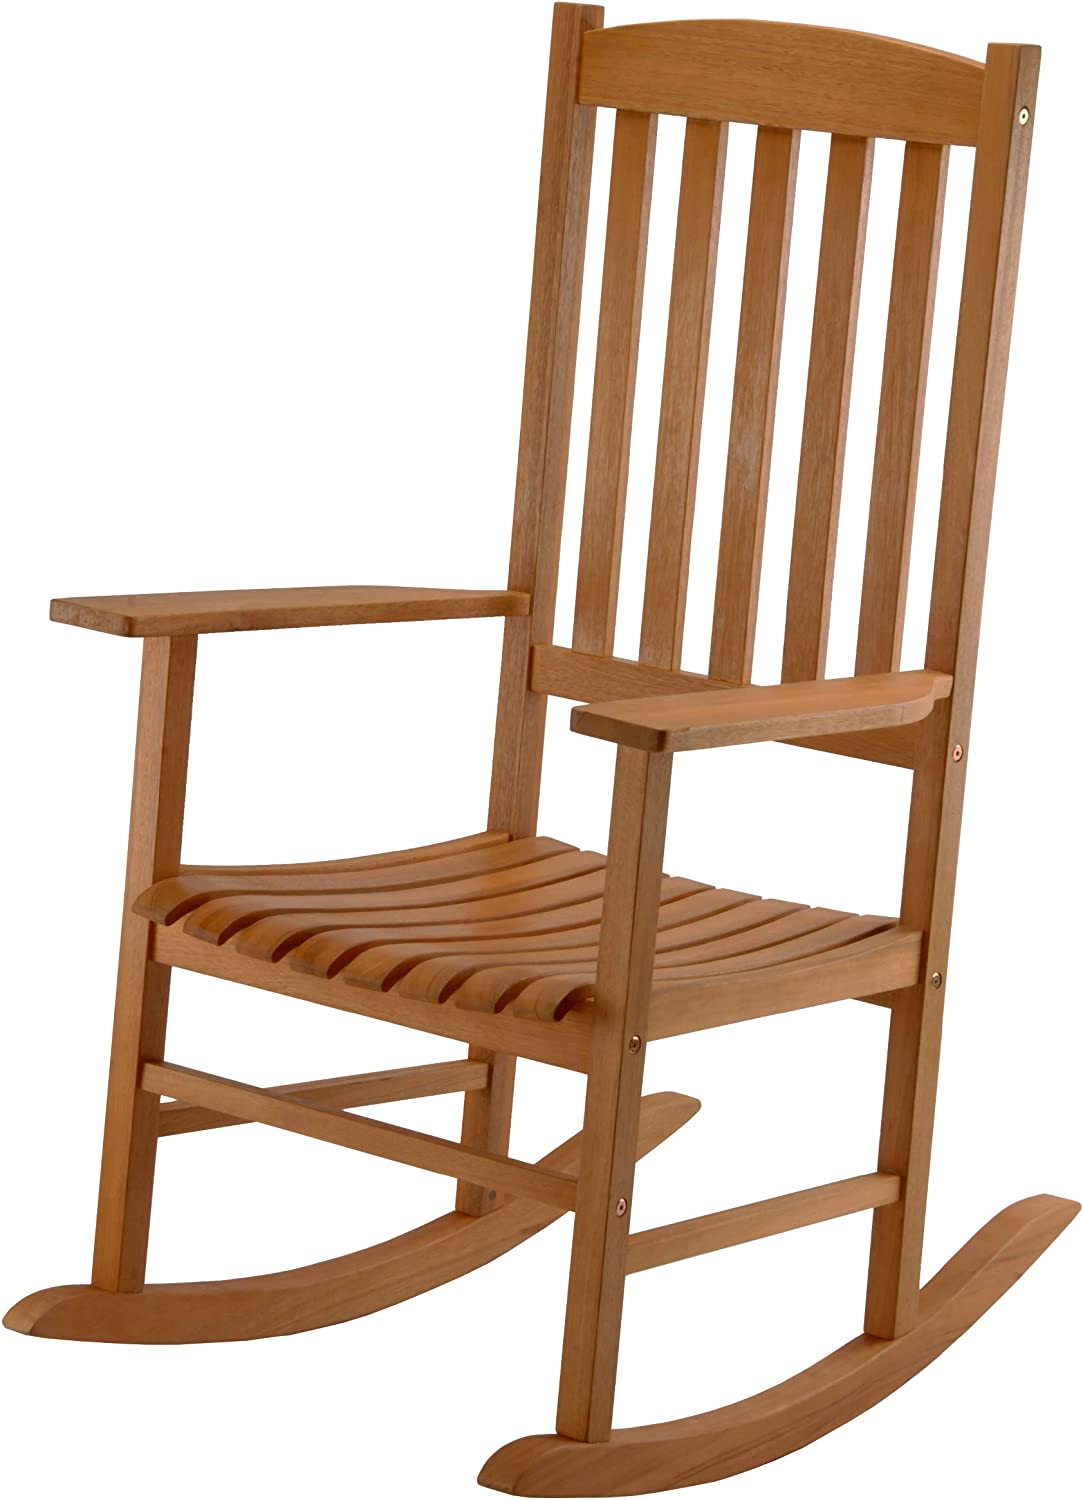 National Outdoor Living Eucalyptus Wood Cash special price Chair Rocking High quality new Patio